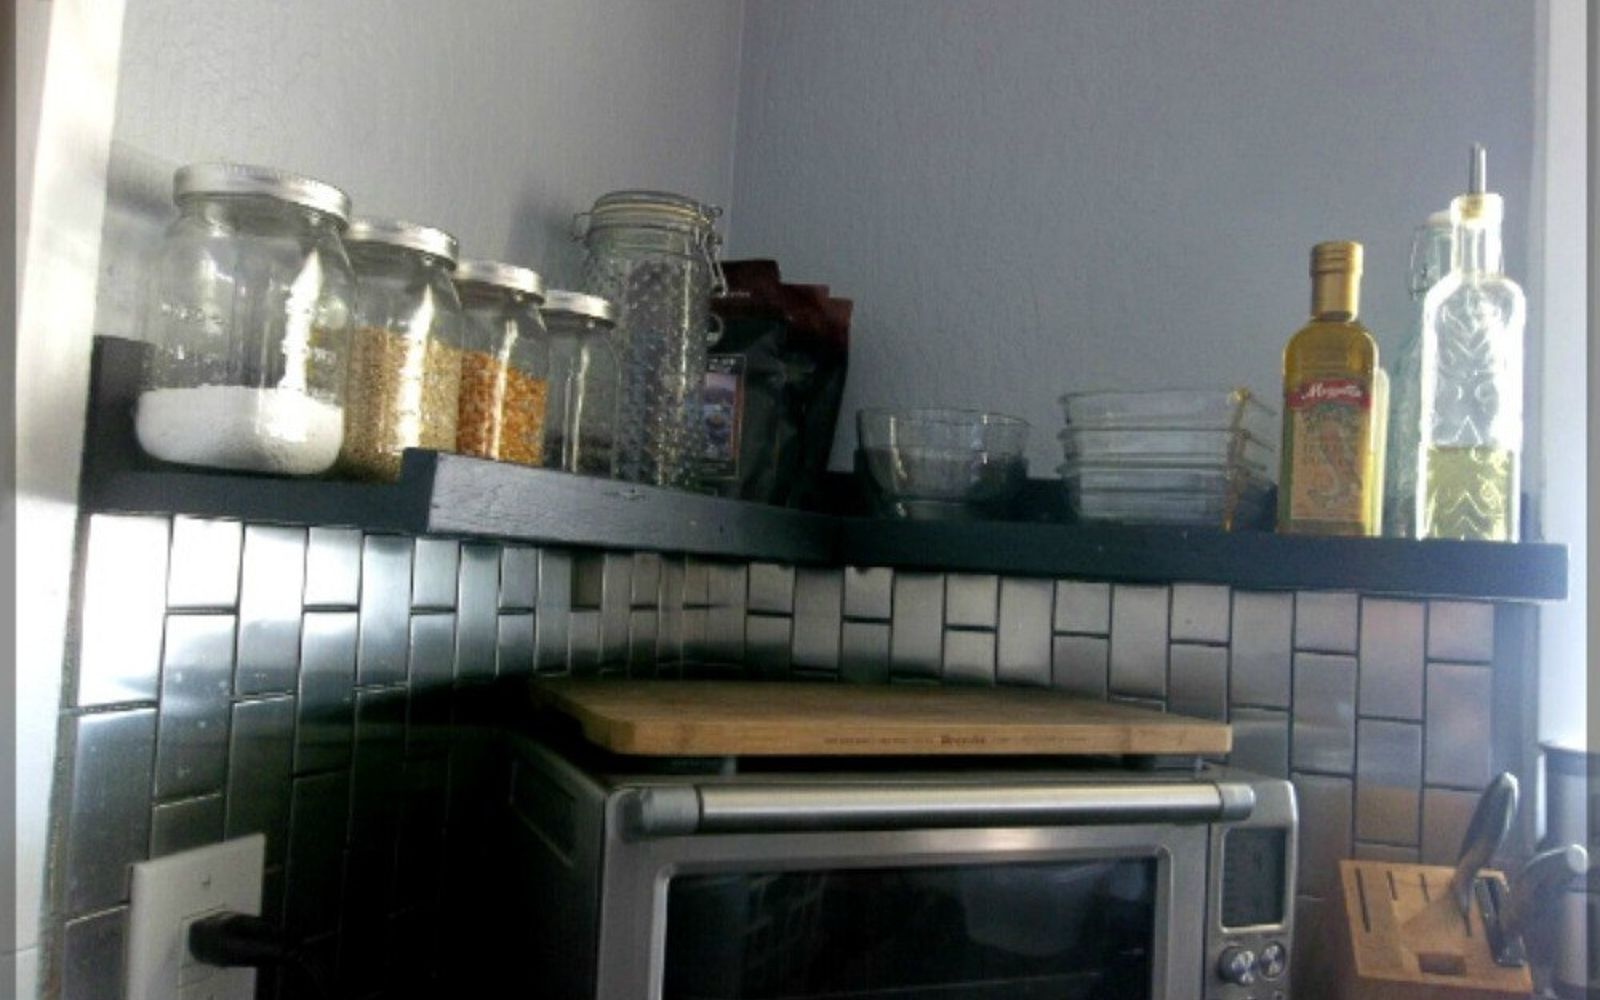 s 12 space saving solutions for your tight kitchen, kitchen design, shelving ideas, Build a ledge shelf for everyday items